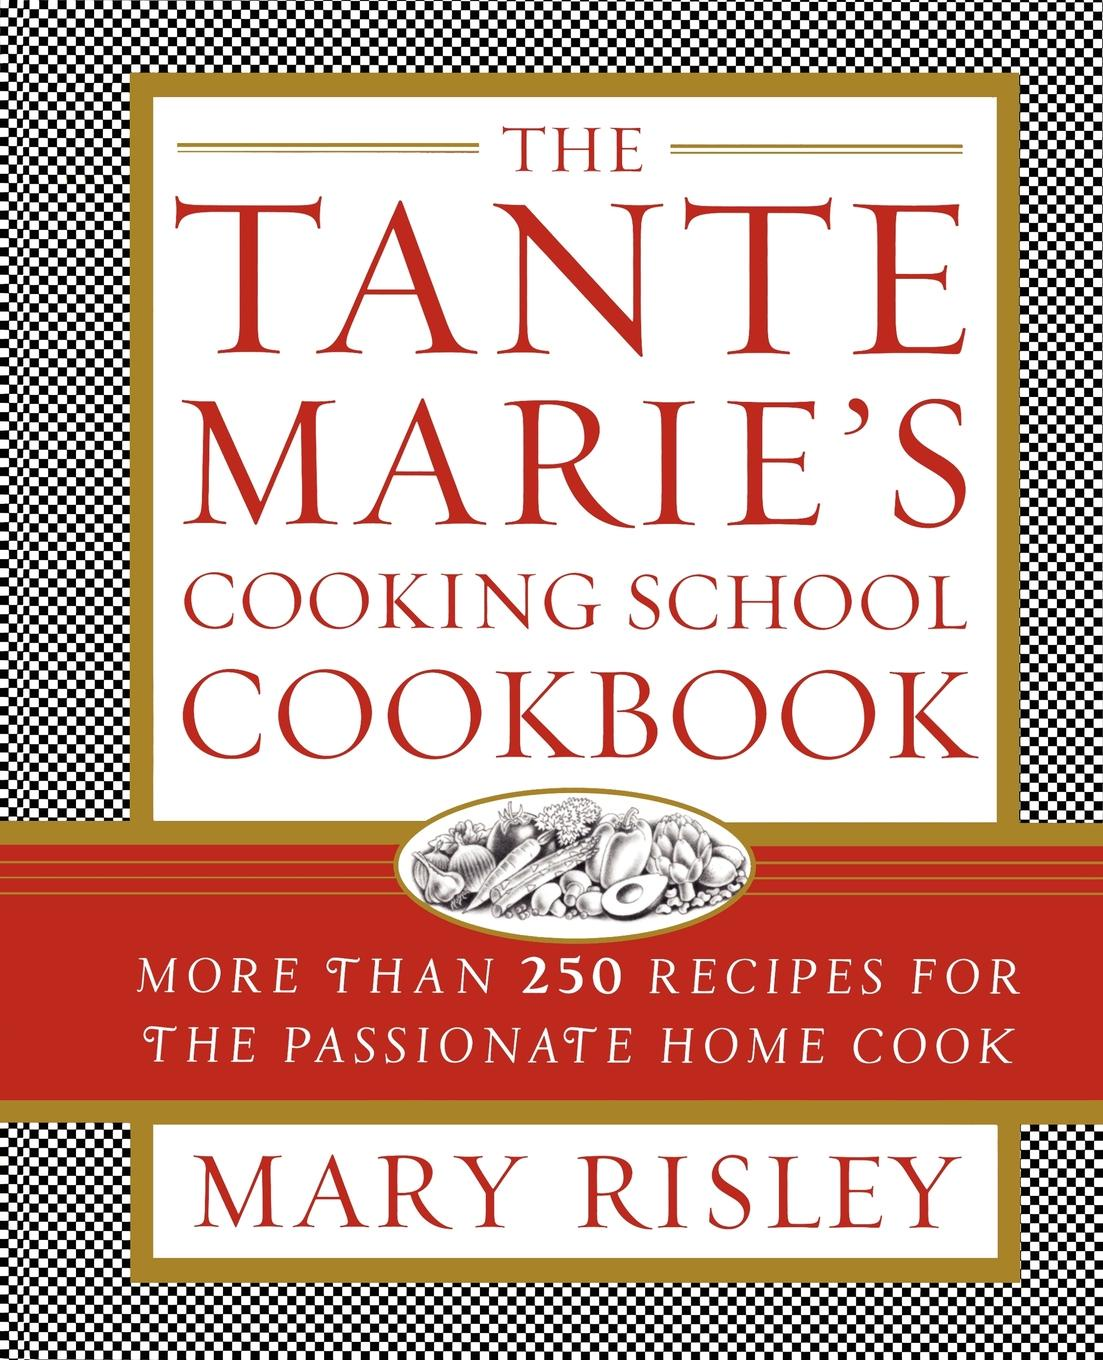 Mary S. Risley The Tante Marie's Cooking School Cookbook. More Than 250 Recipes for the Passionate Home Cook new german cooking recipes for classics revisited